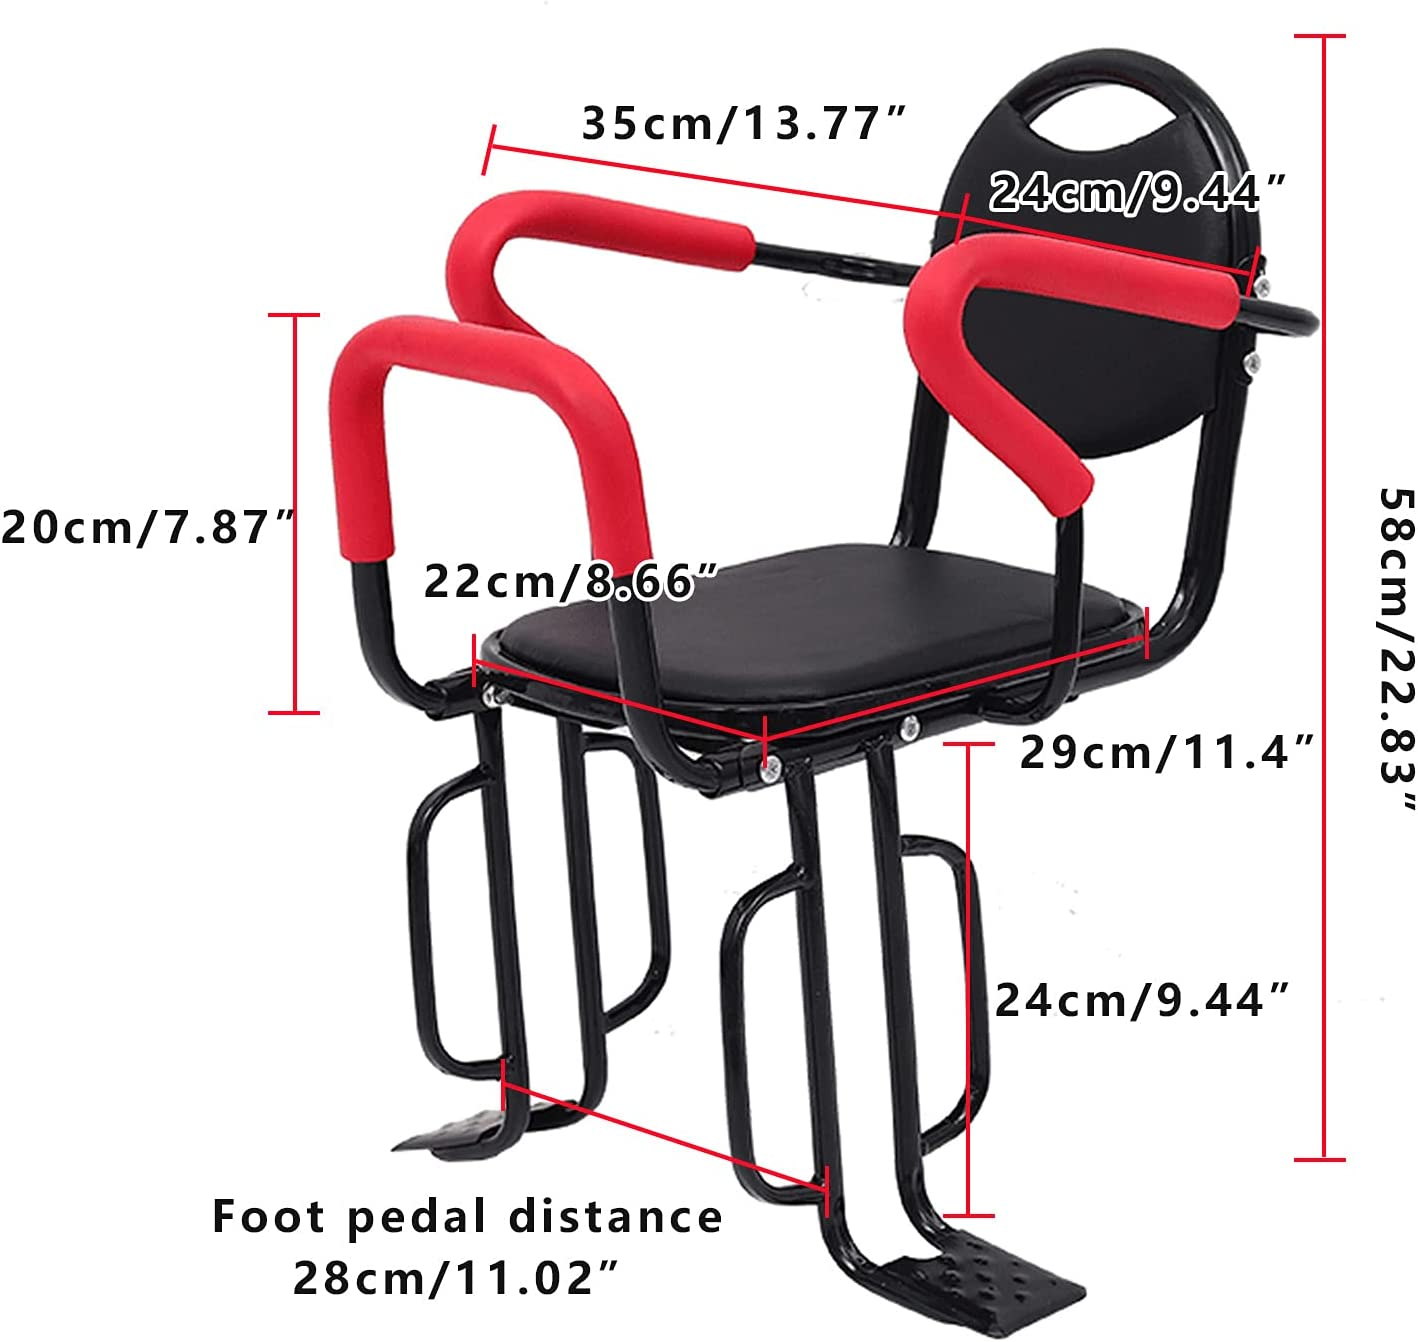 TWSOUL Child Bike Seat, Rear Mounted Child Bike Seats, Back Mount Child Seat with Non-Slip Armrests/Pedals Padde/Seat Belt, Hold Up to 100lbs